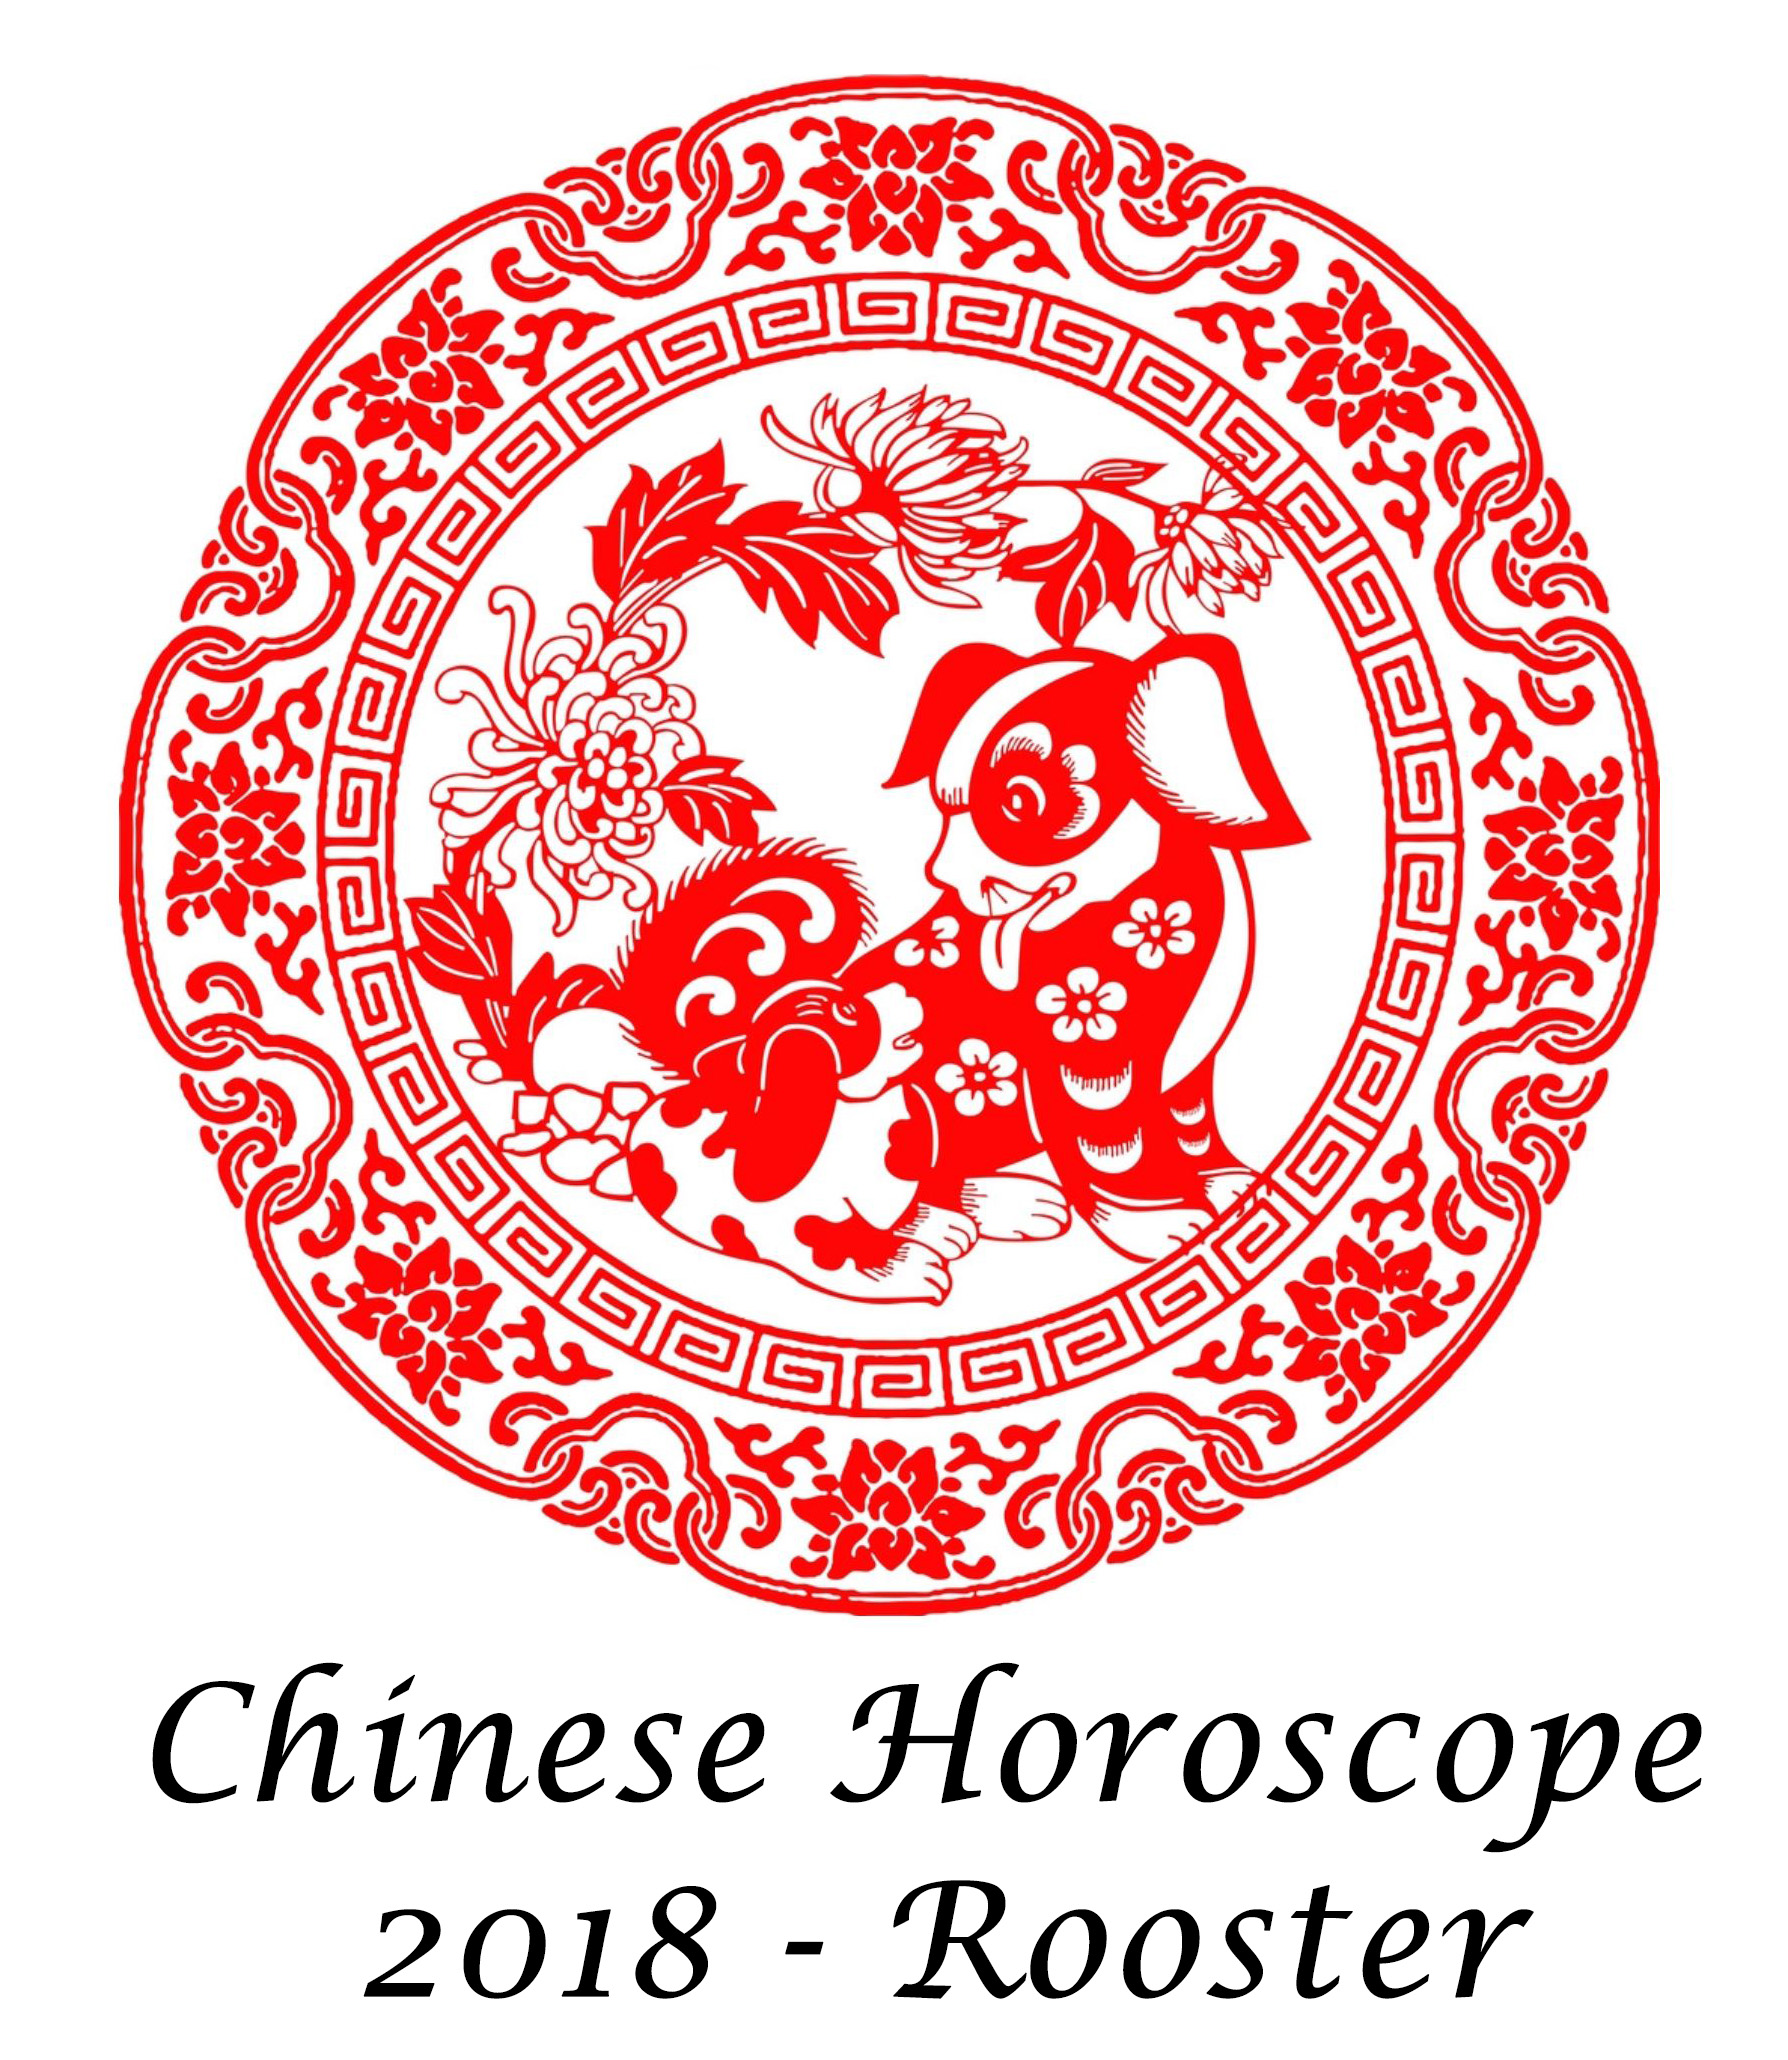 Chinese Horoscope Rooster 2018